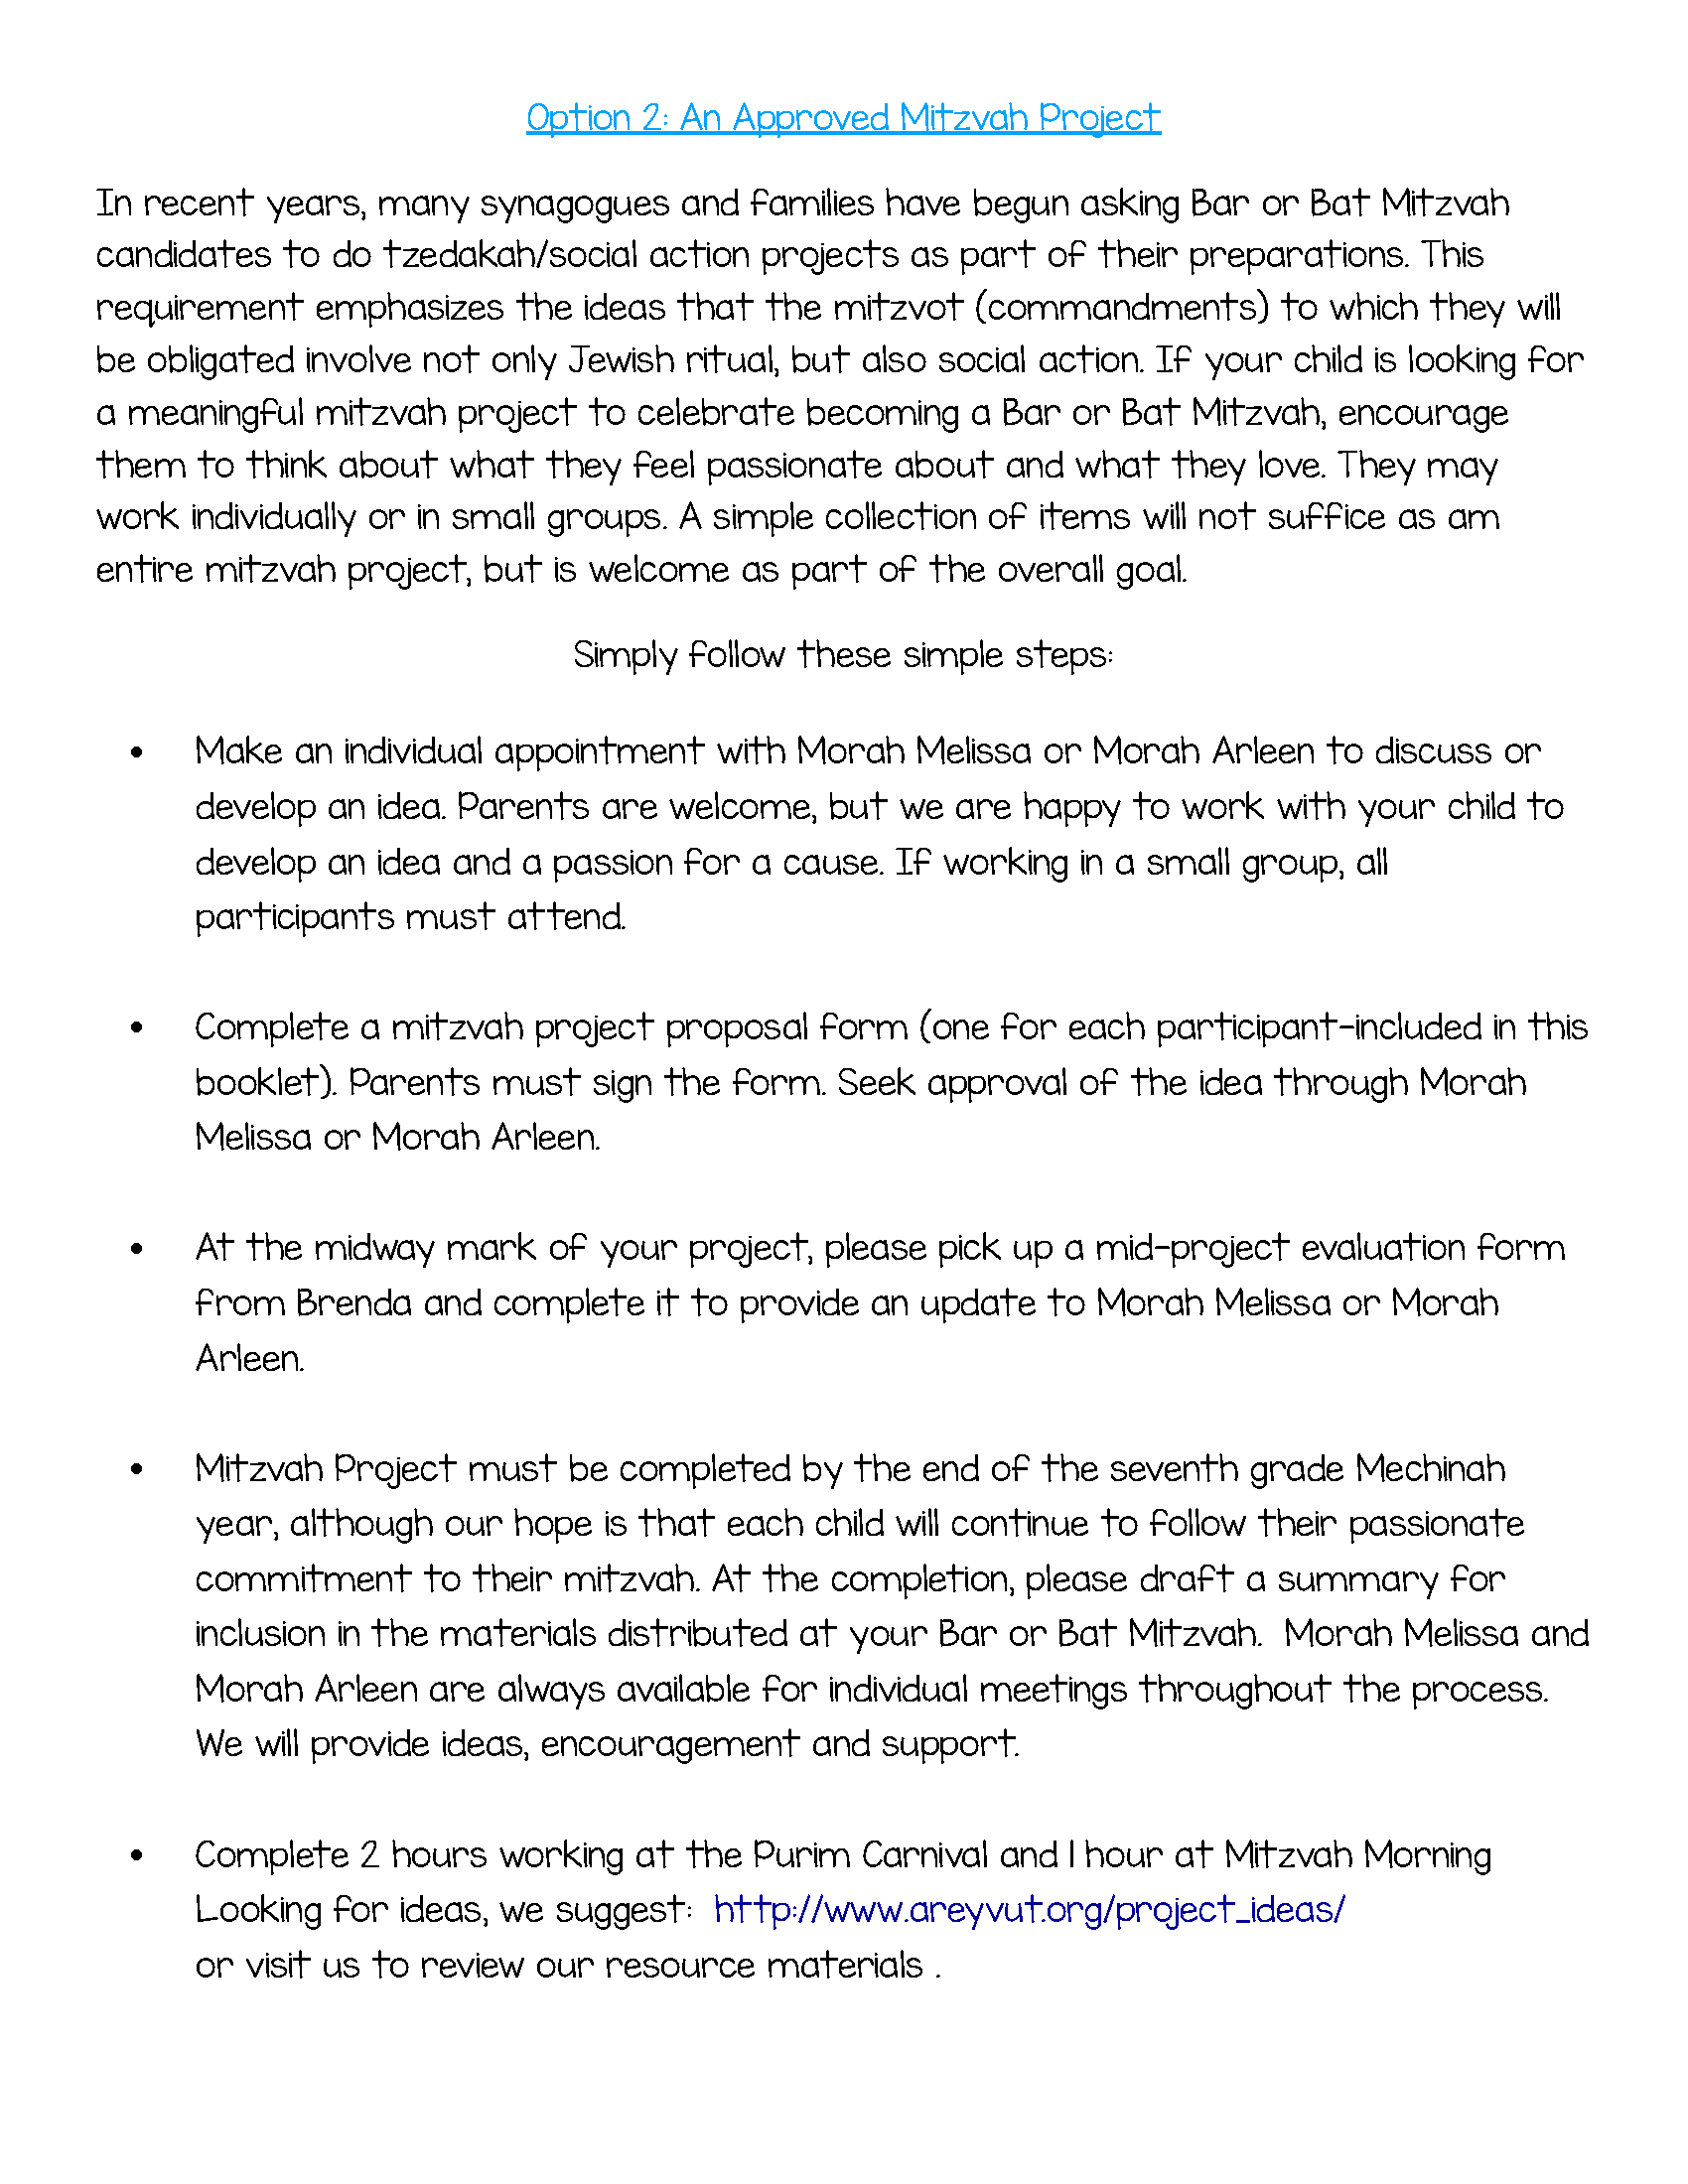 Page 6 Option 2 Approved Mitzvah Project